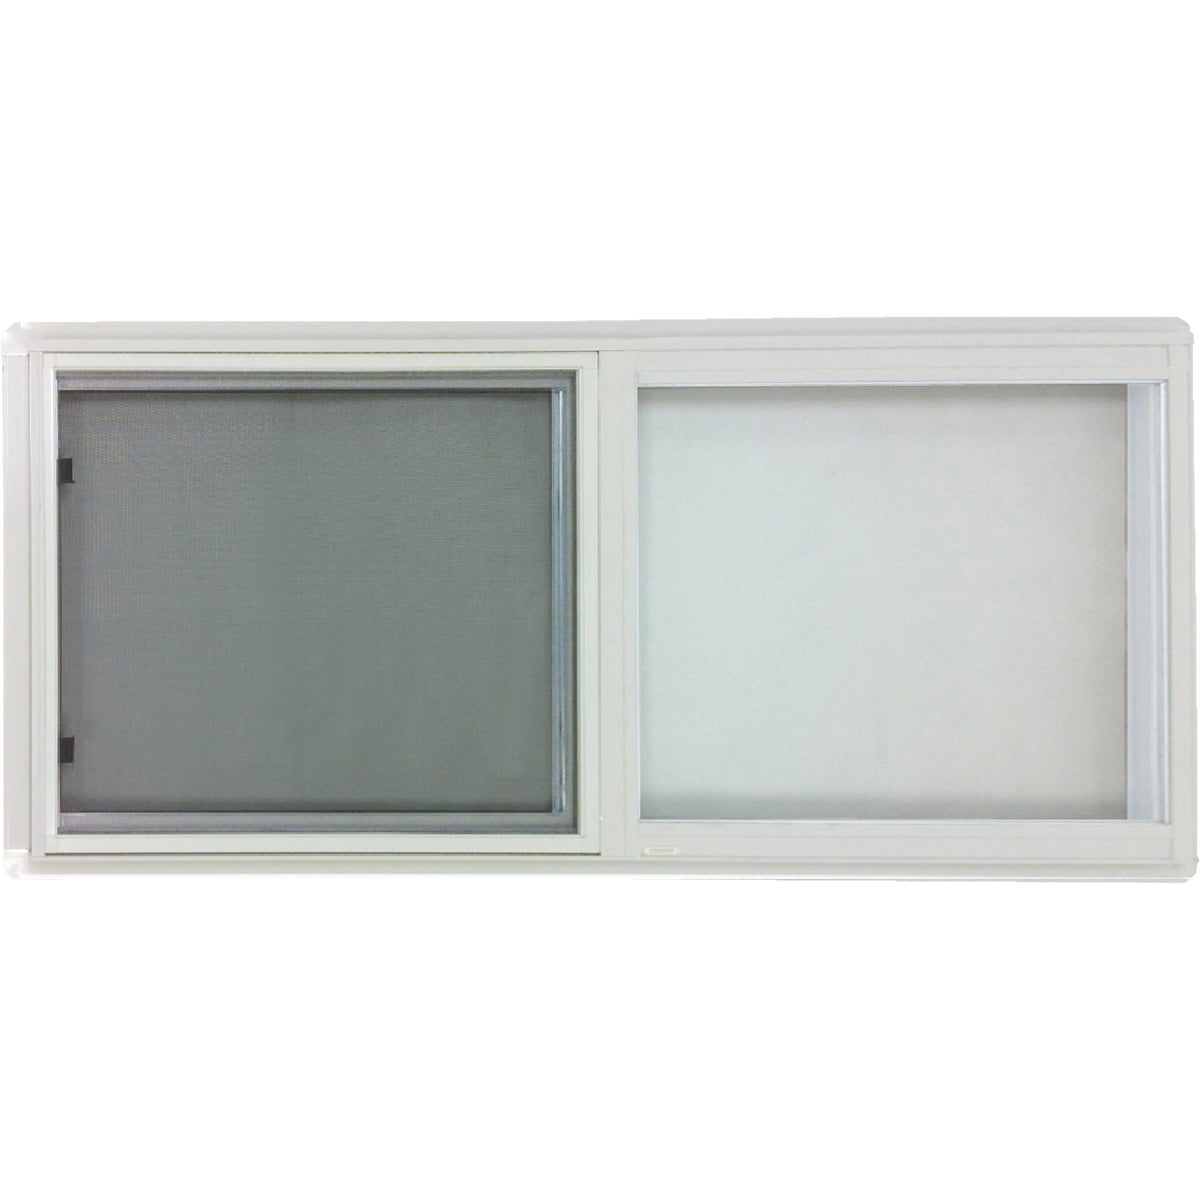 75W 46X22 SLIDING WINDOW - F0235558 by Croft Llc